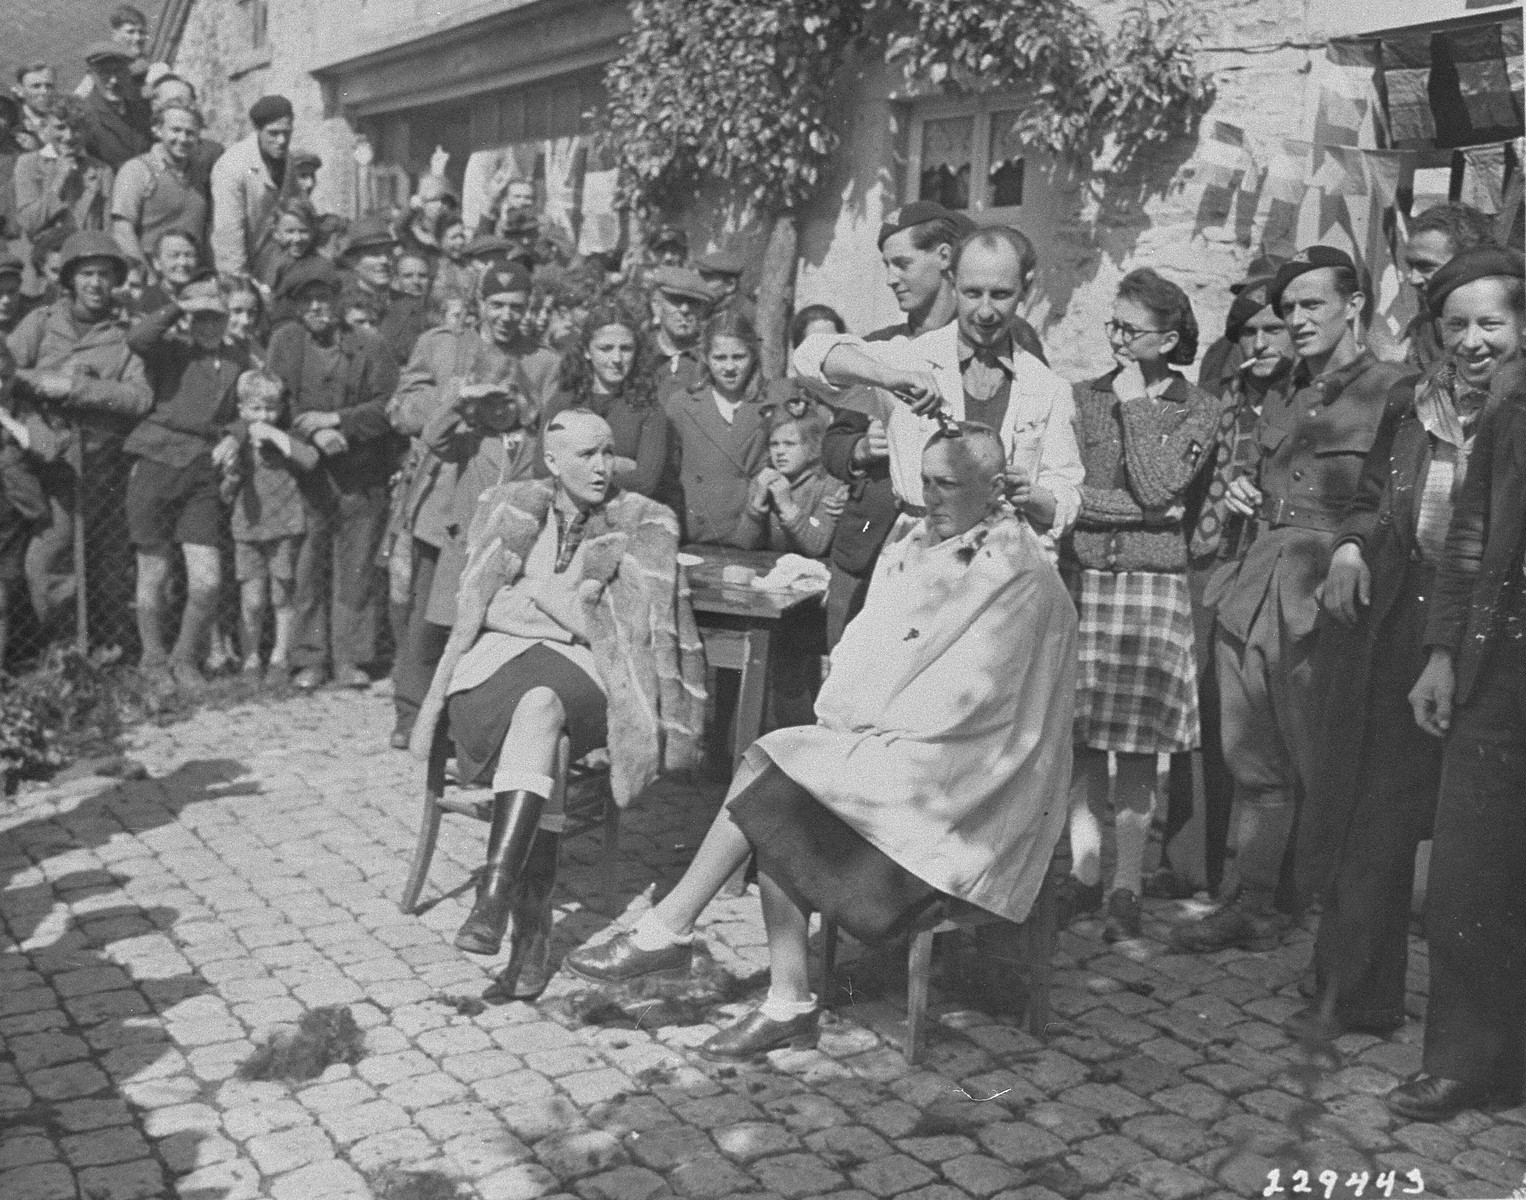 Belgian civilians and members of the resistance watch as a barber shaves the head of a woman who collaborated with the Nazis.  The woman at left has also had a swastika painted on her head.